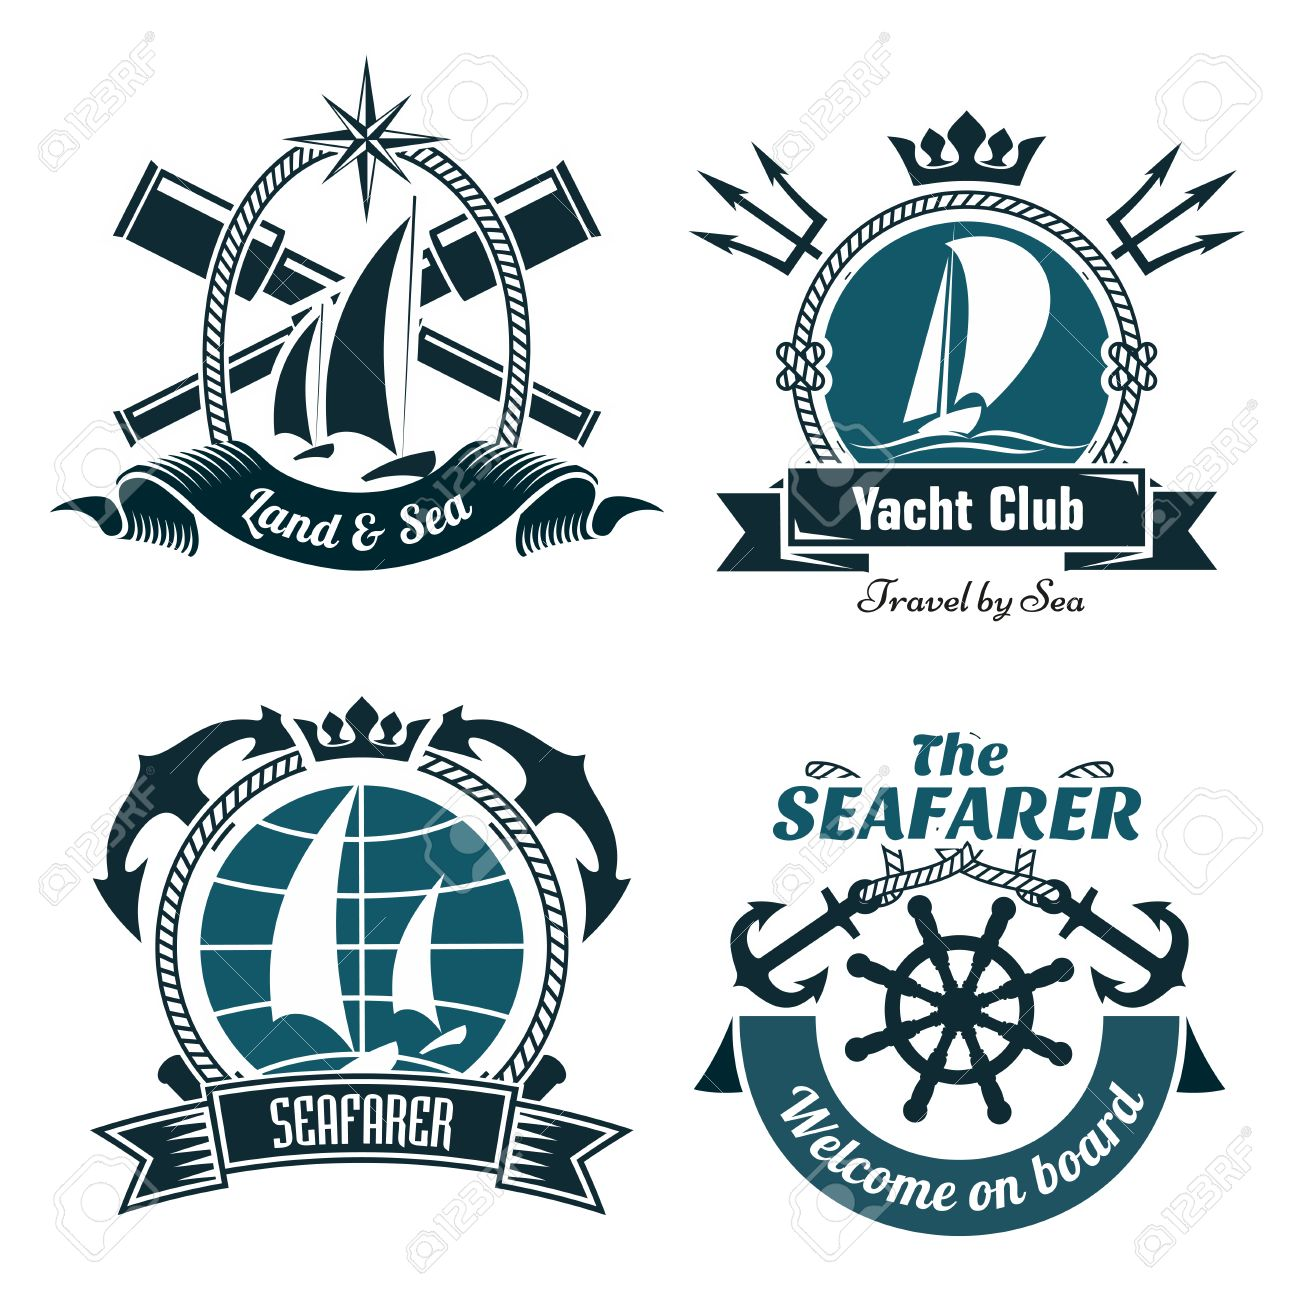 Yacht club or sailing sport retro symbols and icons with sailing